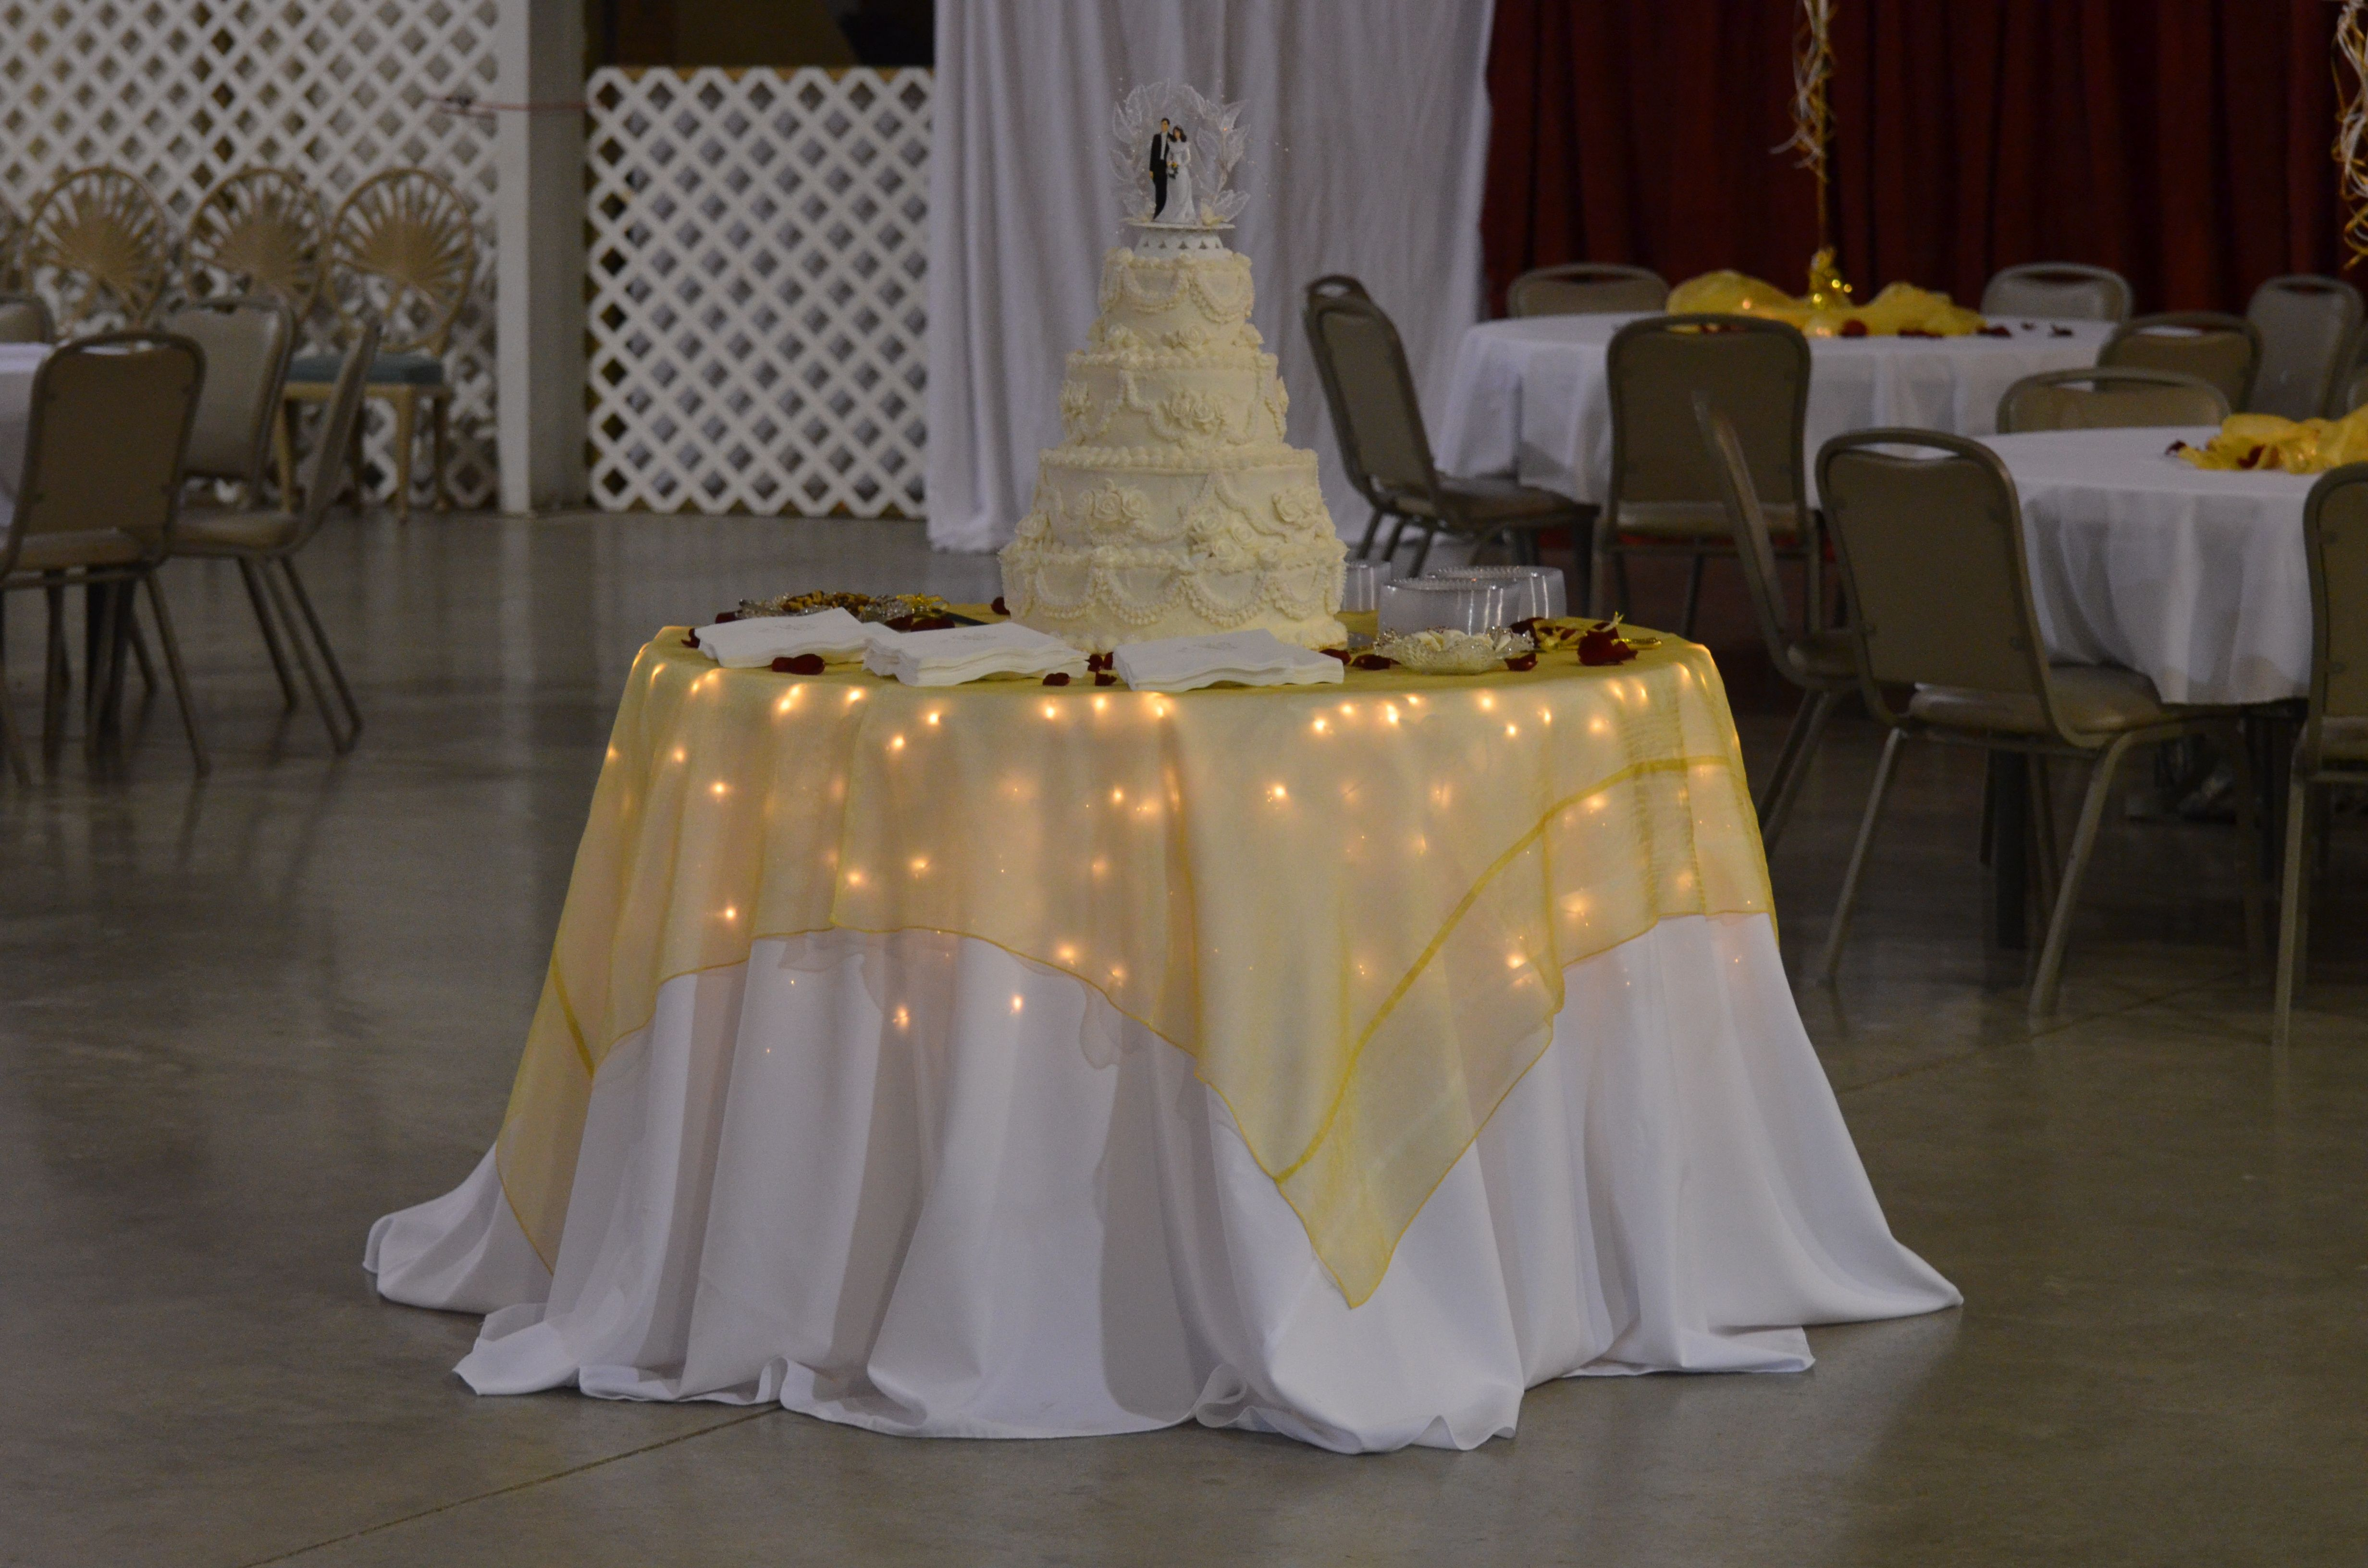 Superb Christmas Lights Under Table Cloth For The Outside Tables At The Wedding.  Easy!